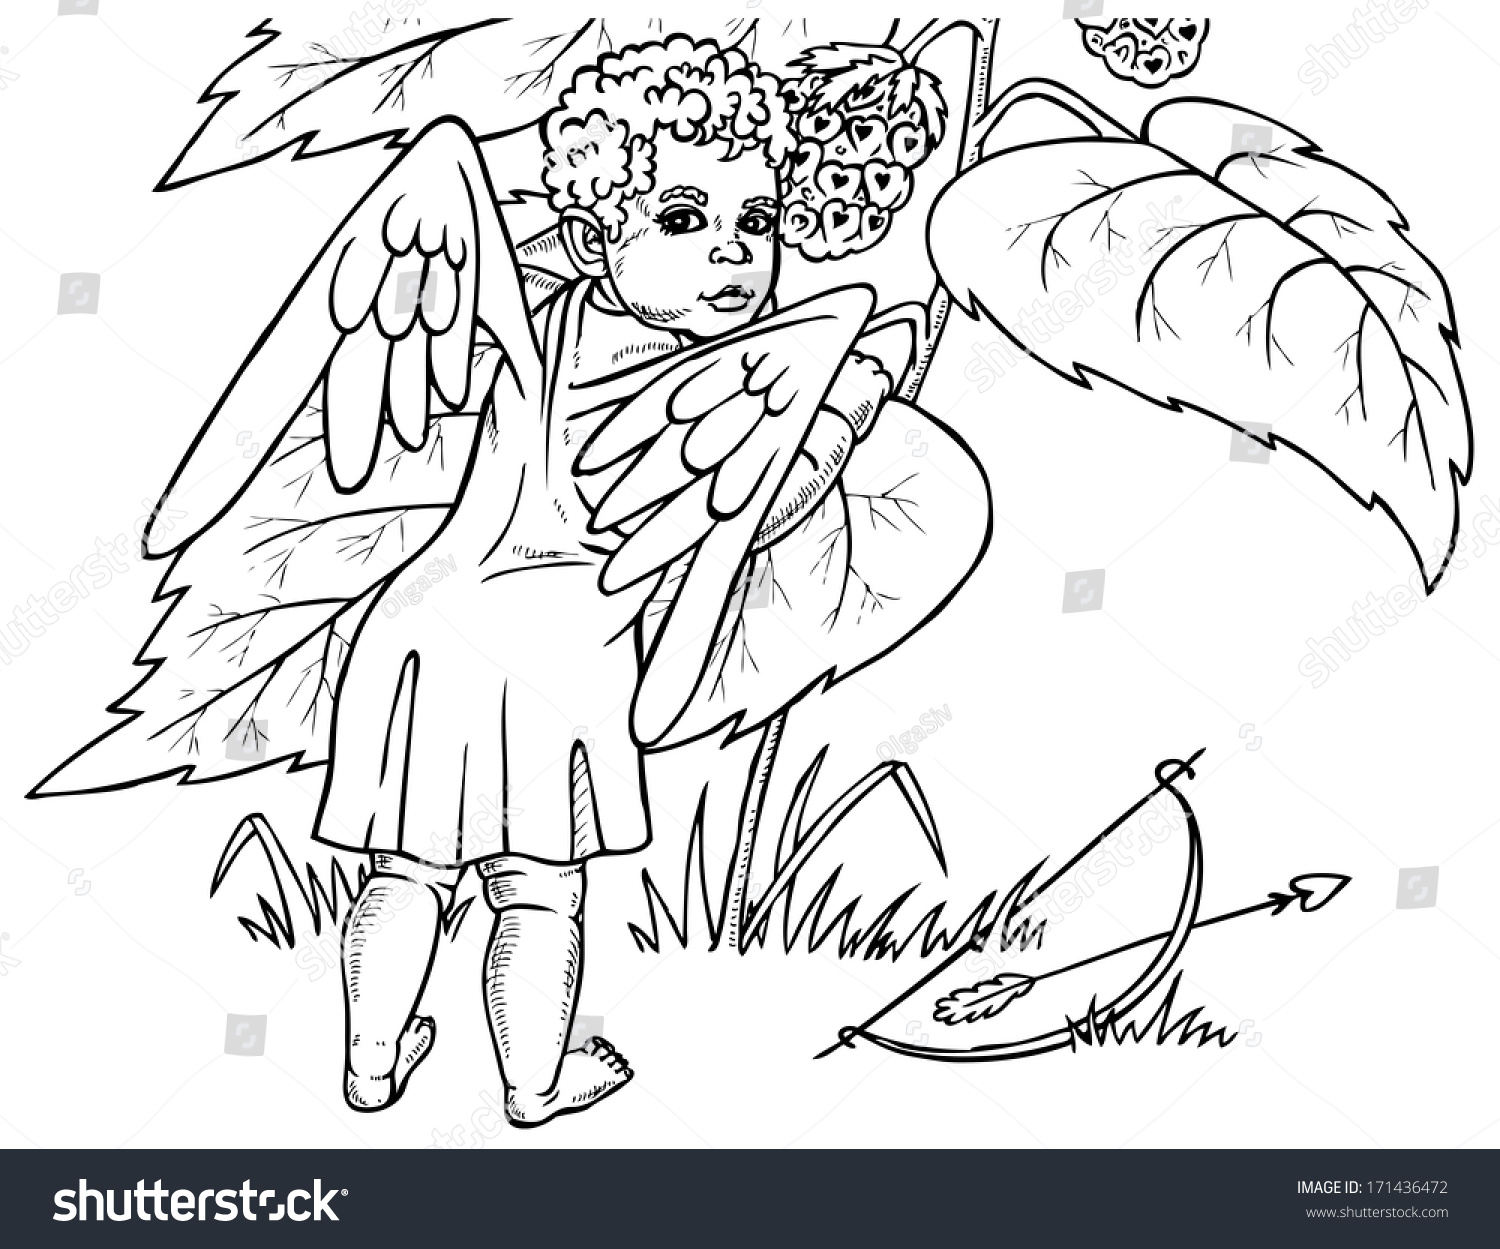 image angel who vomits berry drawing stock vector 171436472